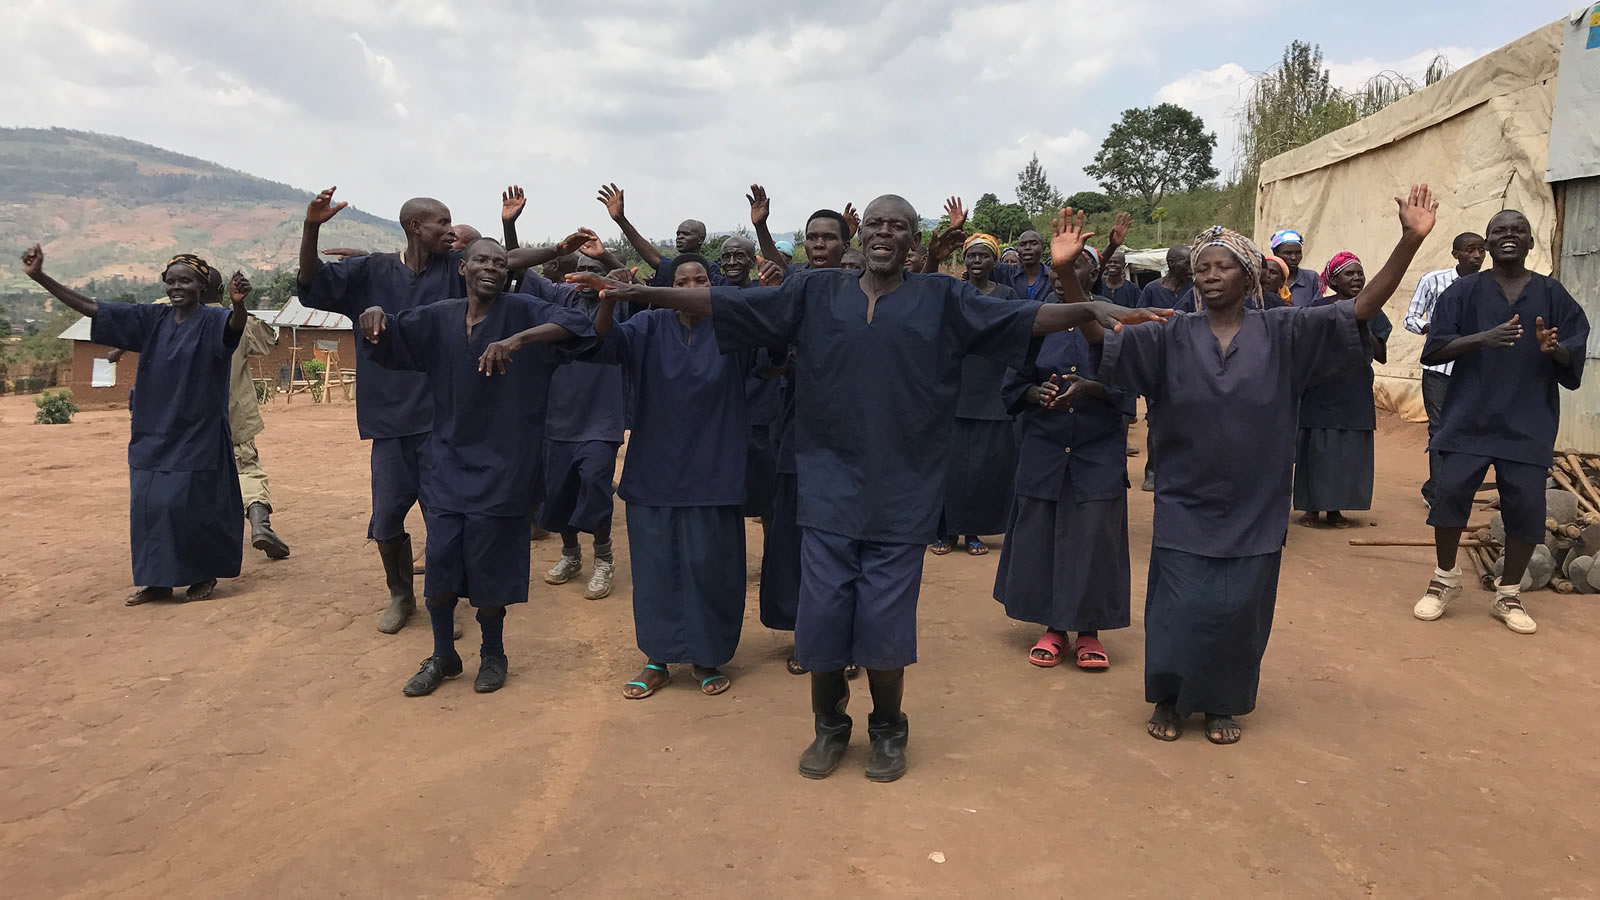 People Singing at the Mageragere TIG Camp in Rwanda